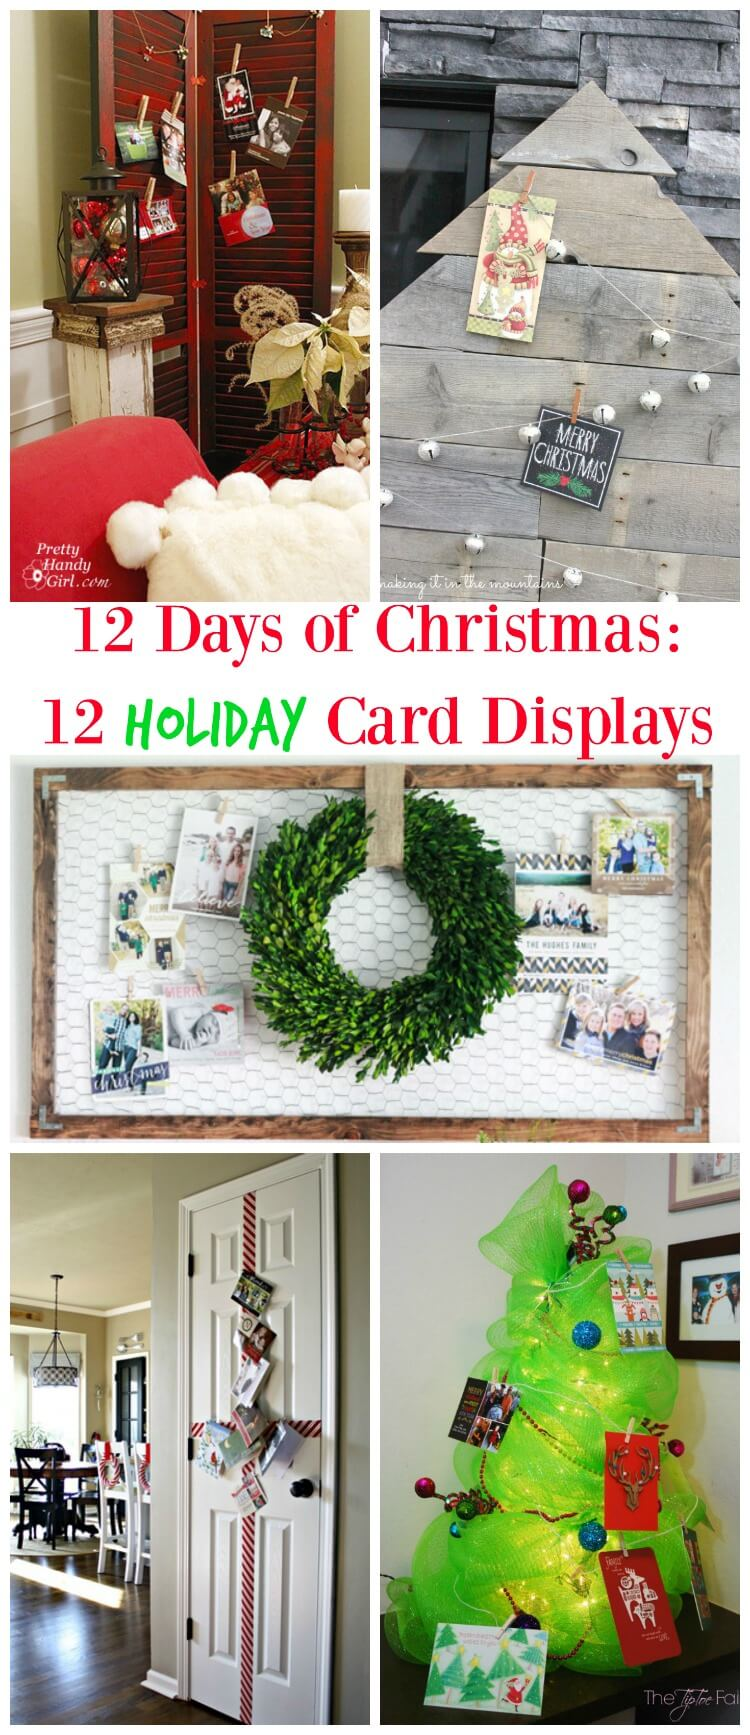 12 Cool Christmas Card Display Ideas - Twelve On Main